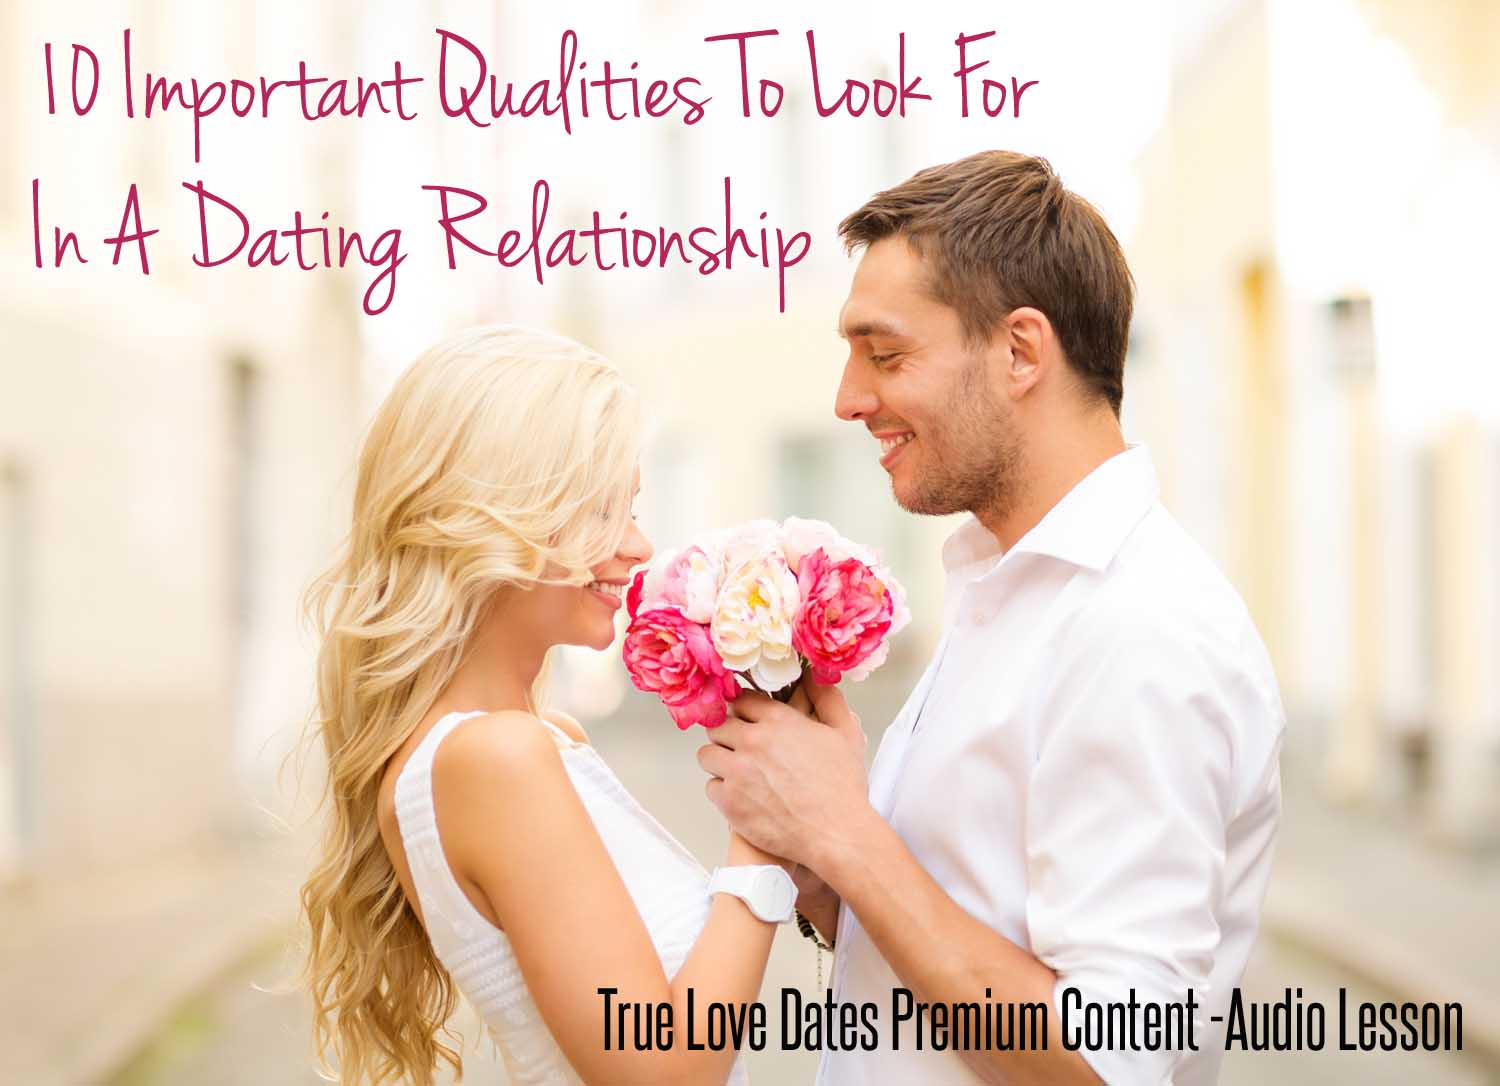 Love dating and relationships